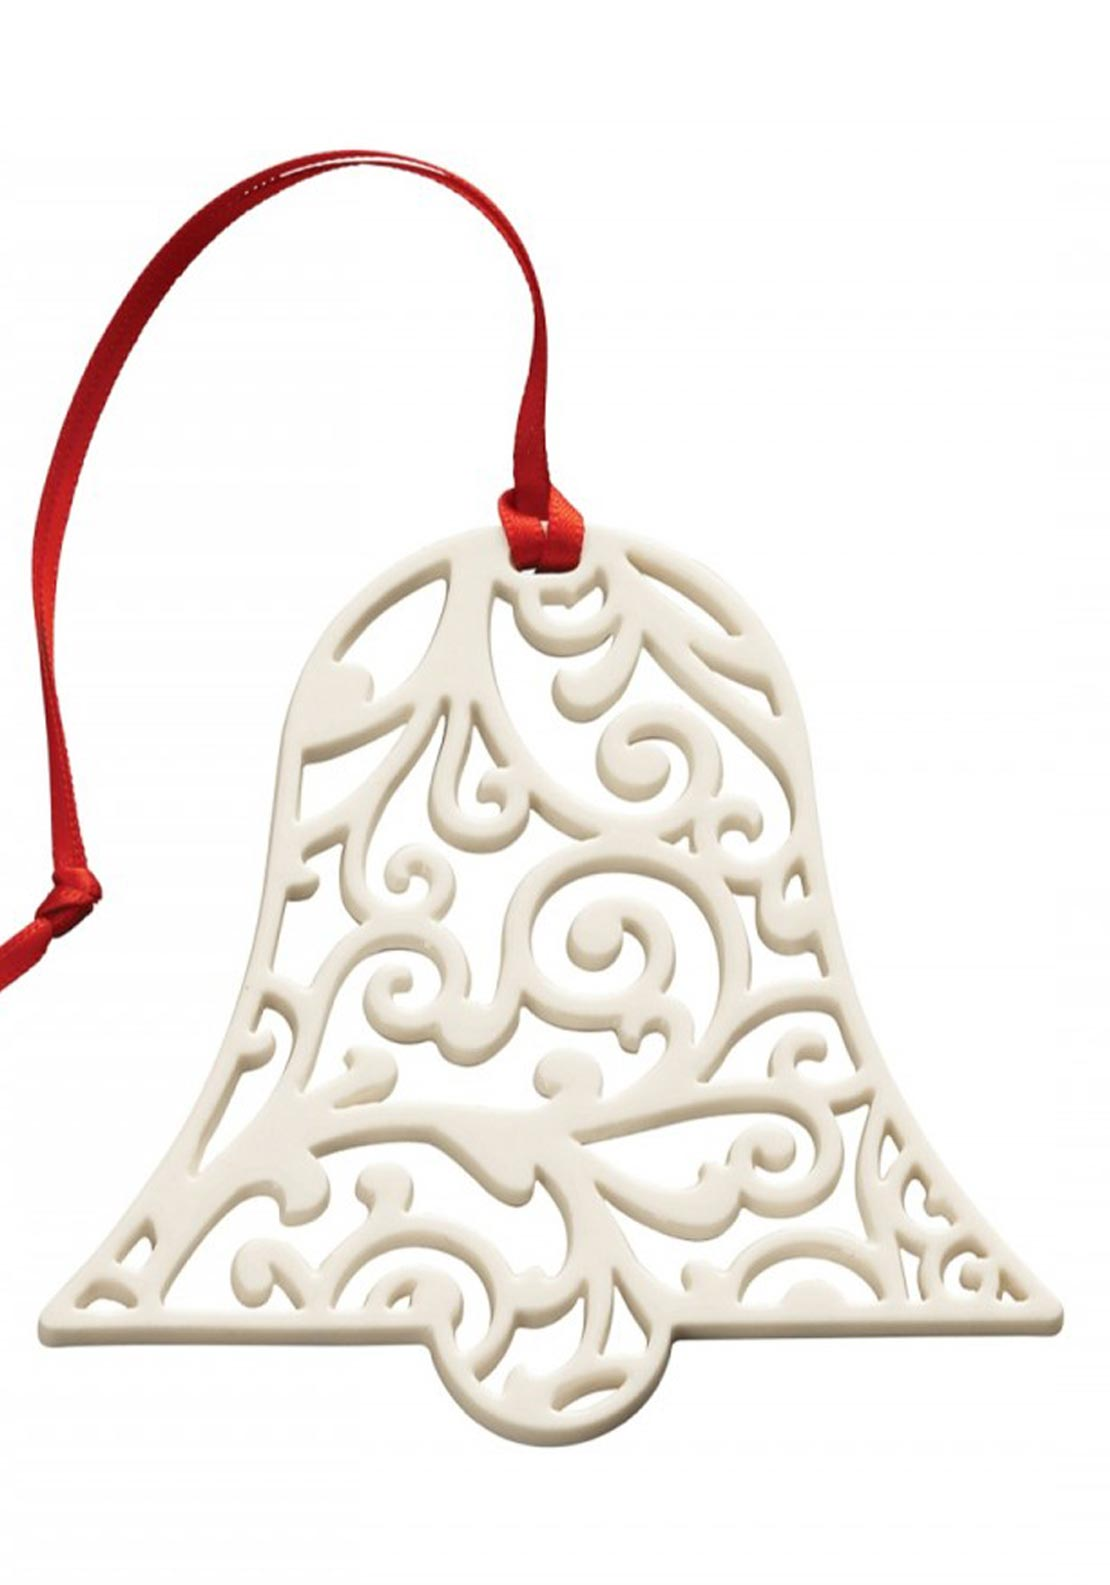 Belleek Living Christmas Hanging Bell  Decoration Ornament